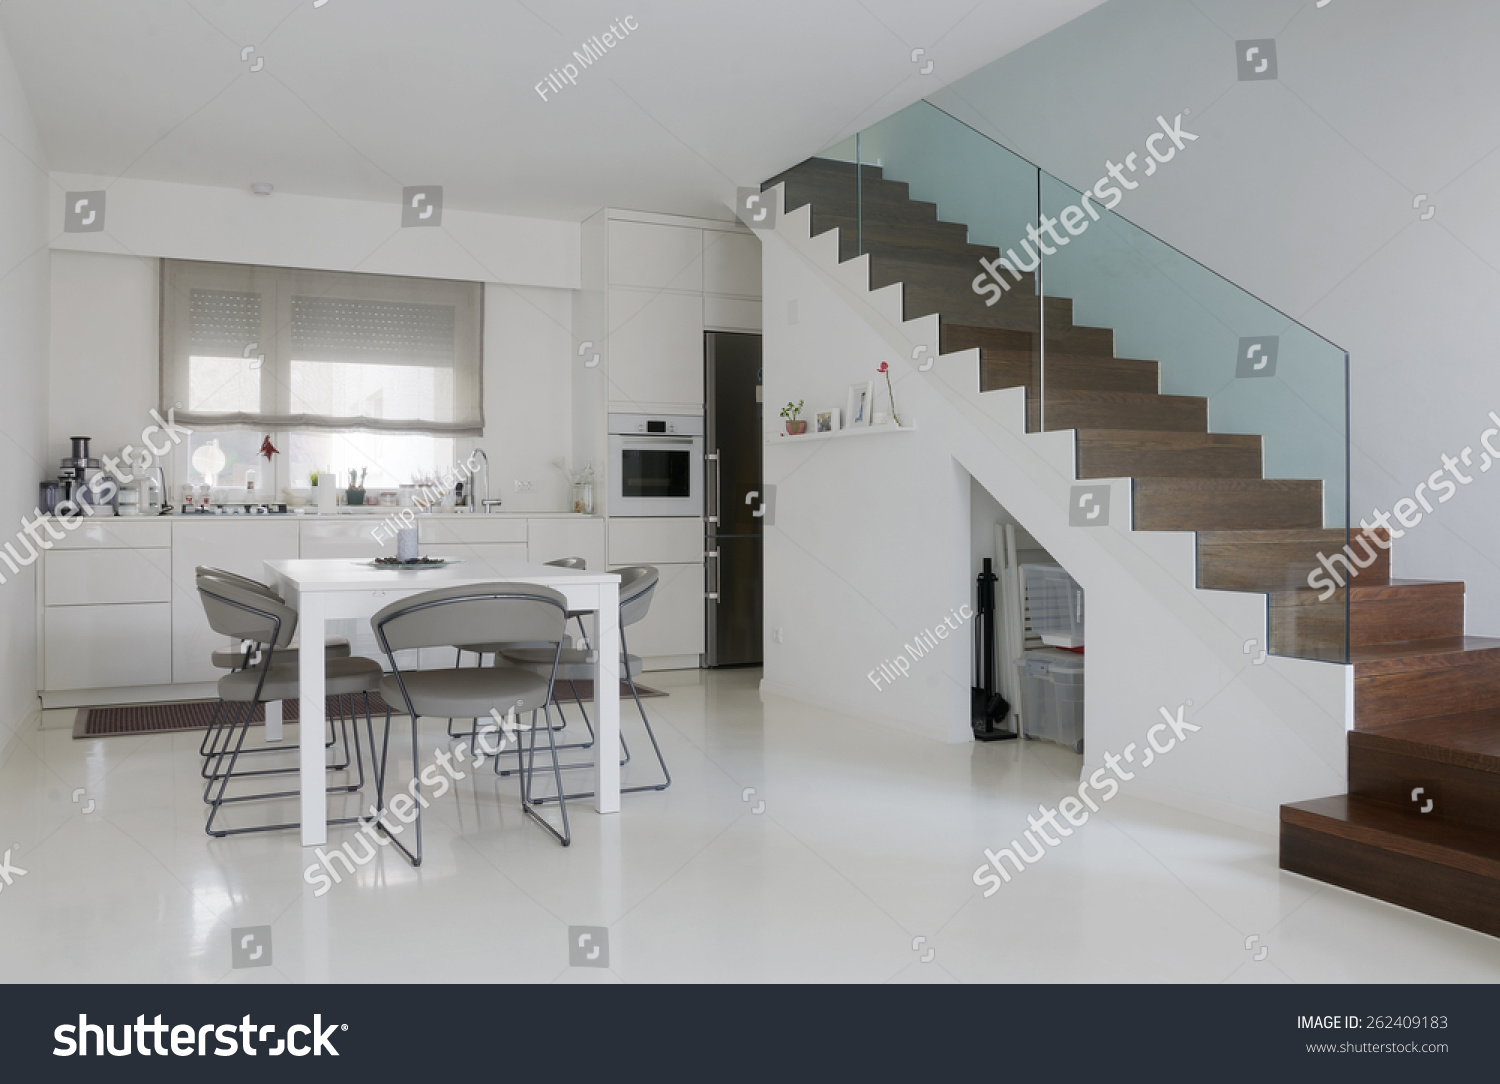 stock photo white kitchen and dining room with white epoxy floor and wooden stairs 262409183